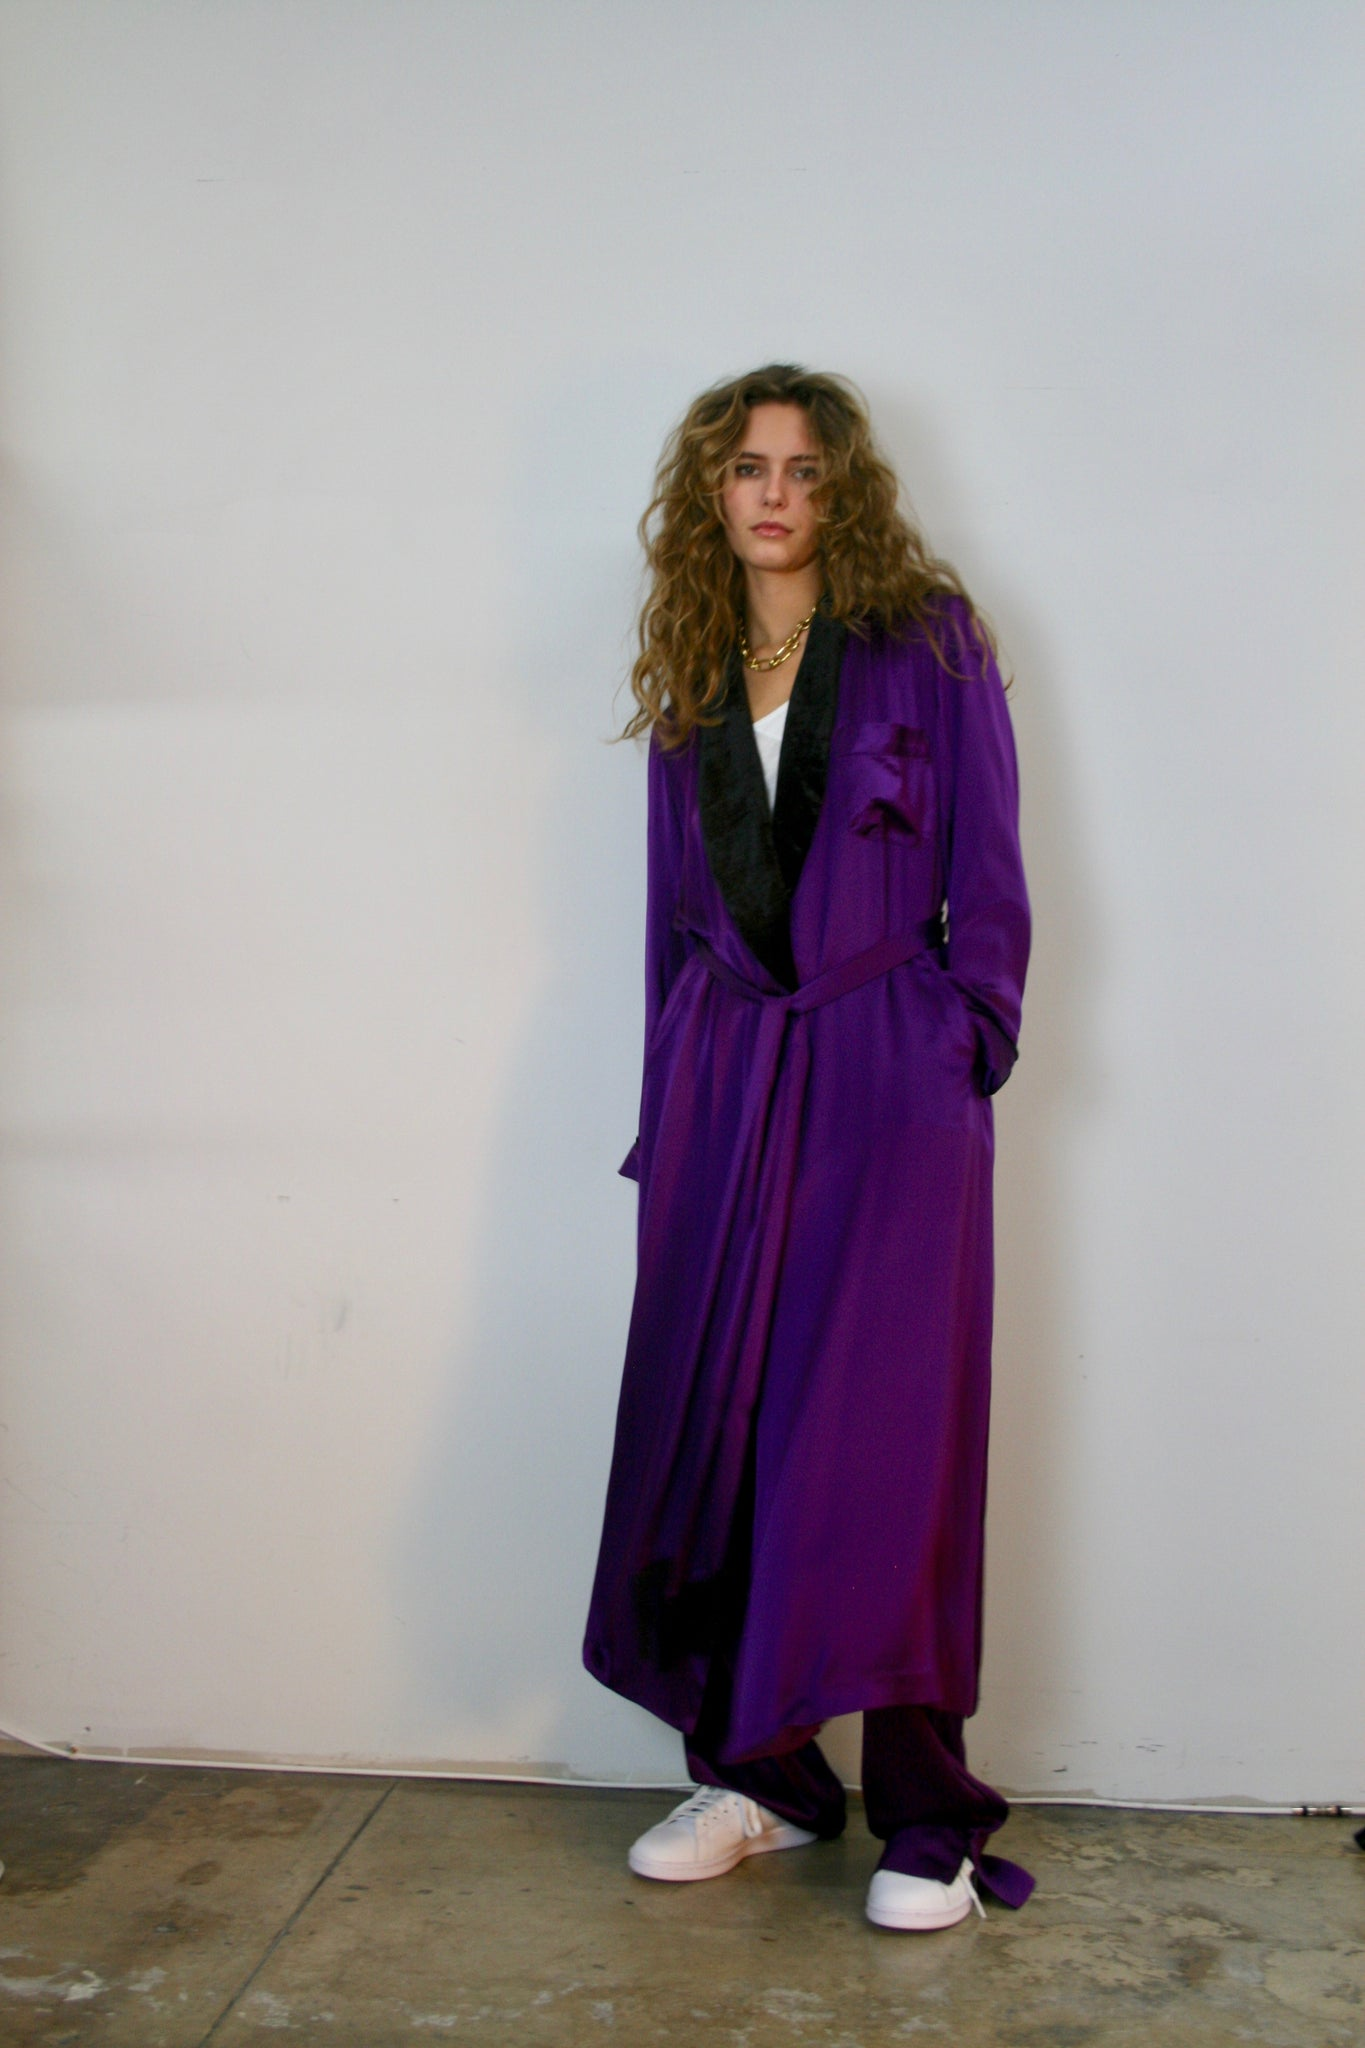 PURPLE ROBE